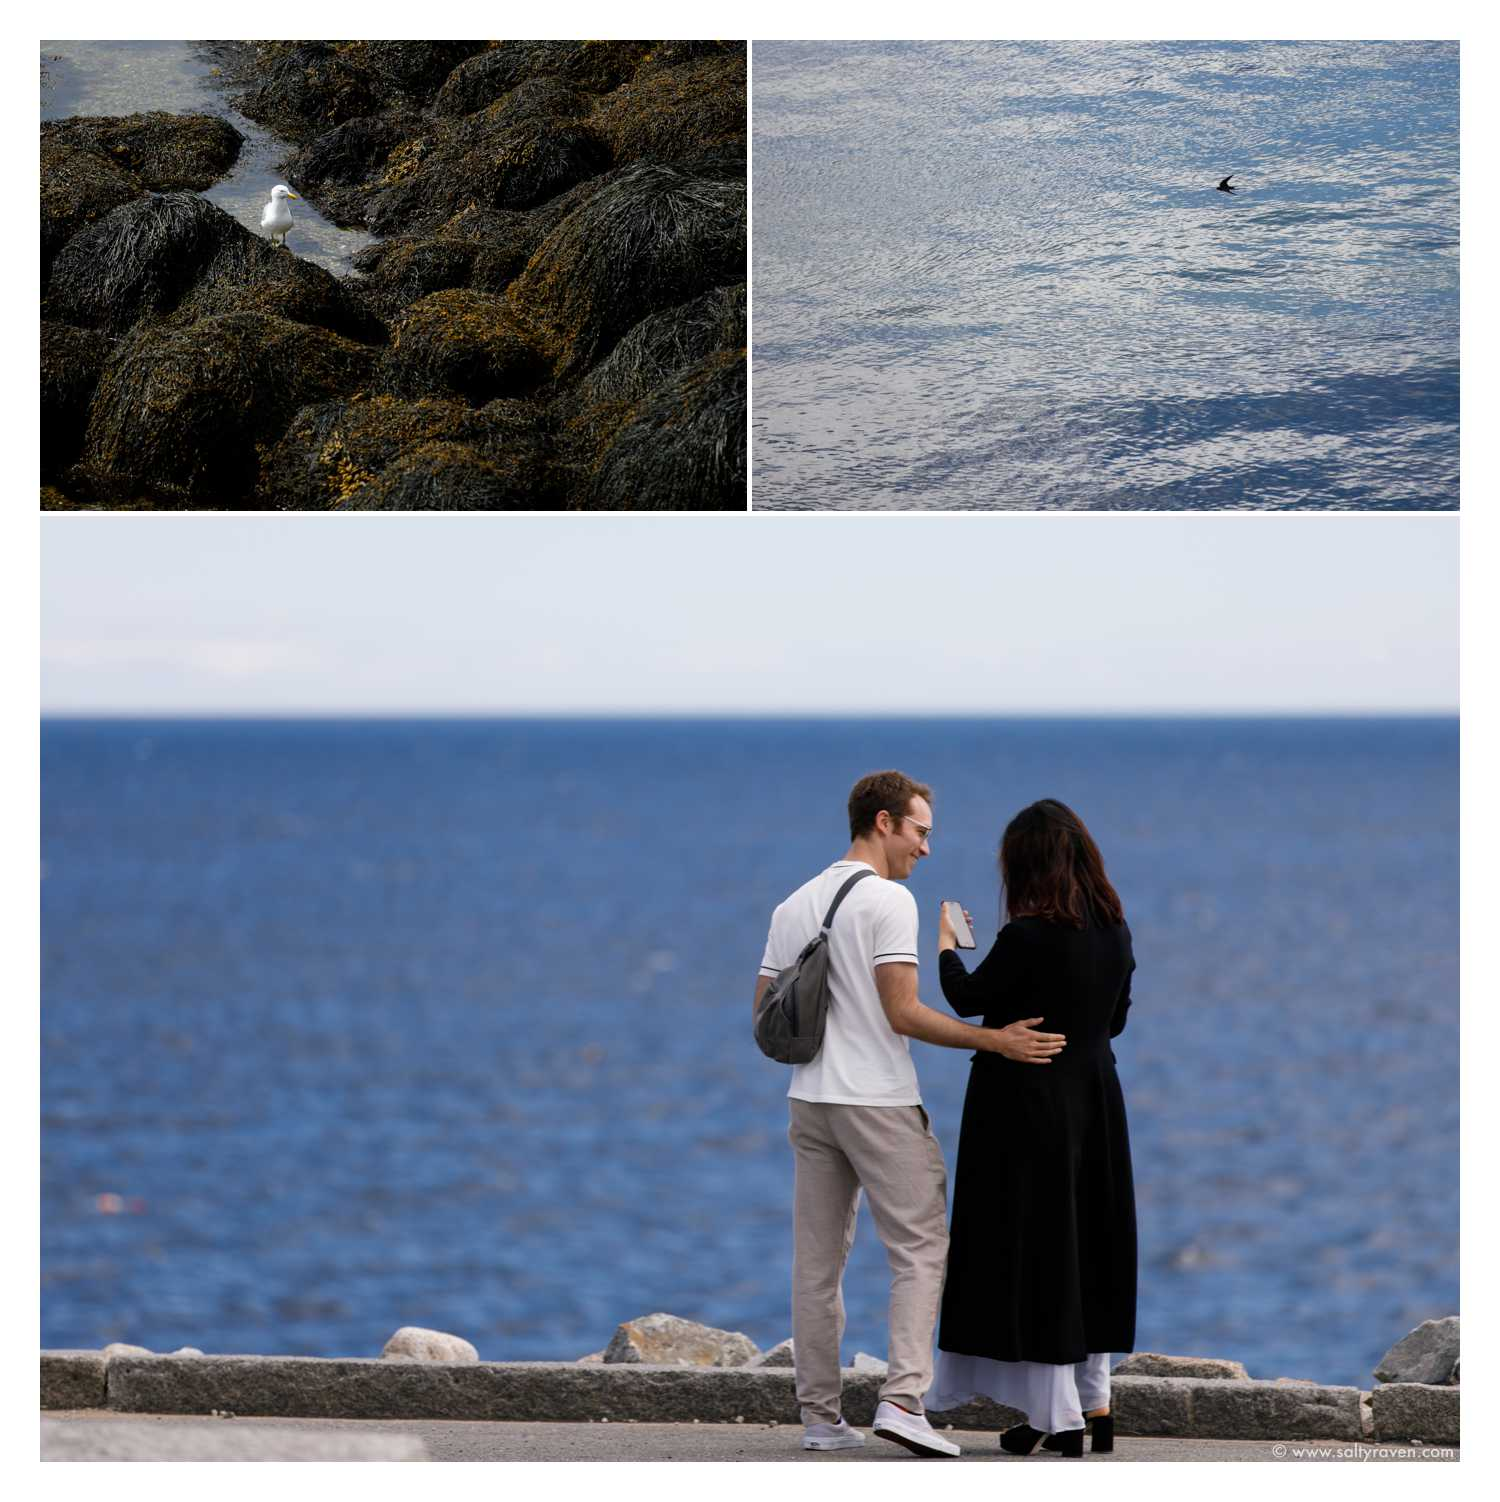 Photos of birds I took while waiting to photograph the surprise proposal in Rockport, MA.